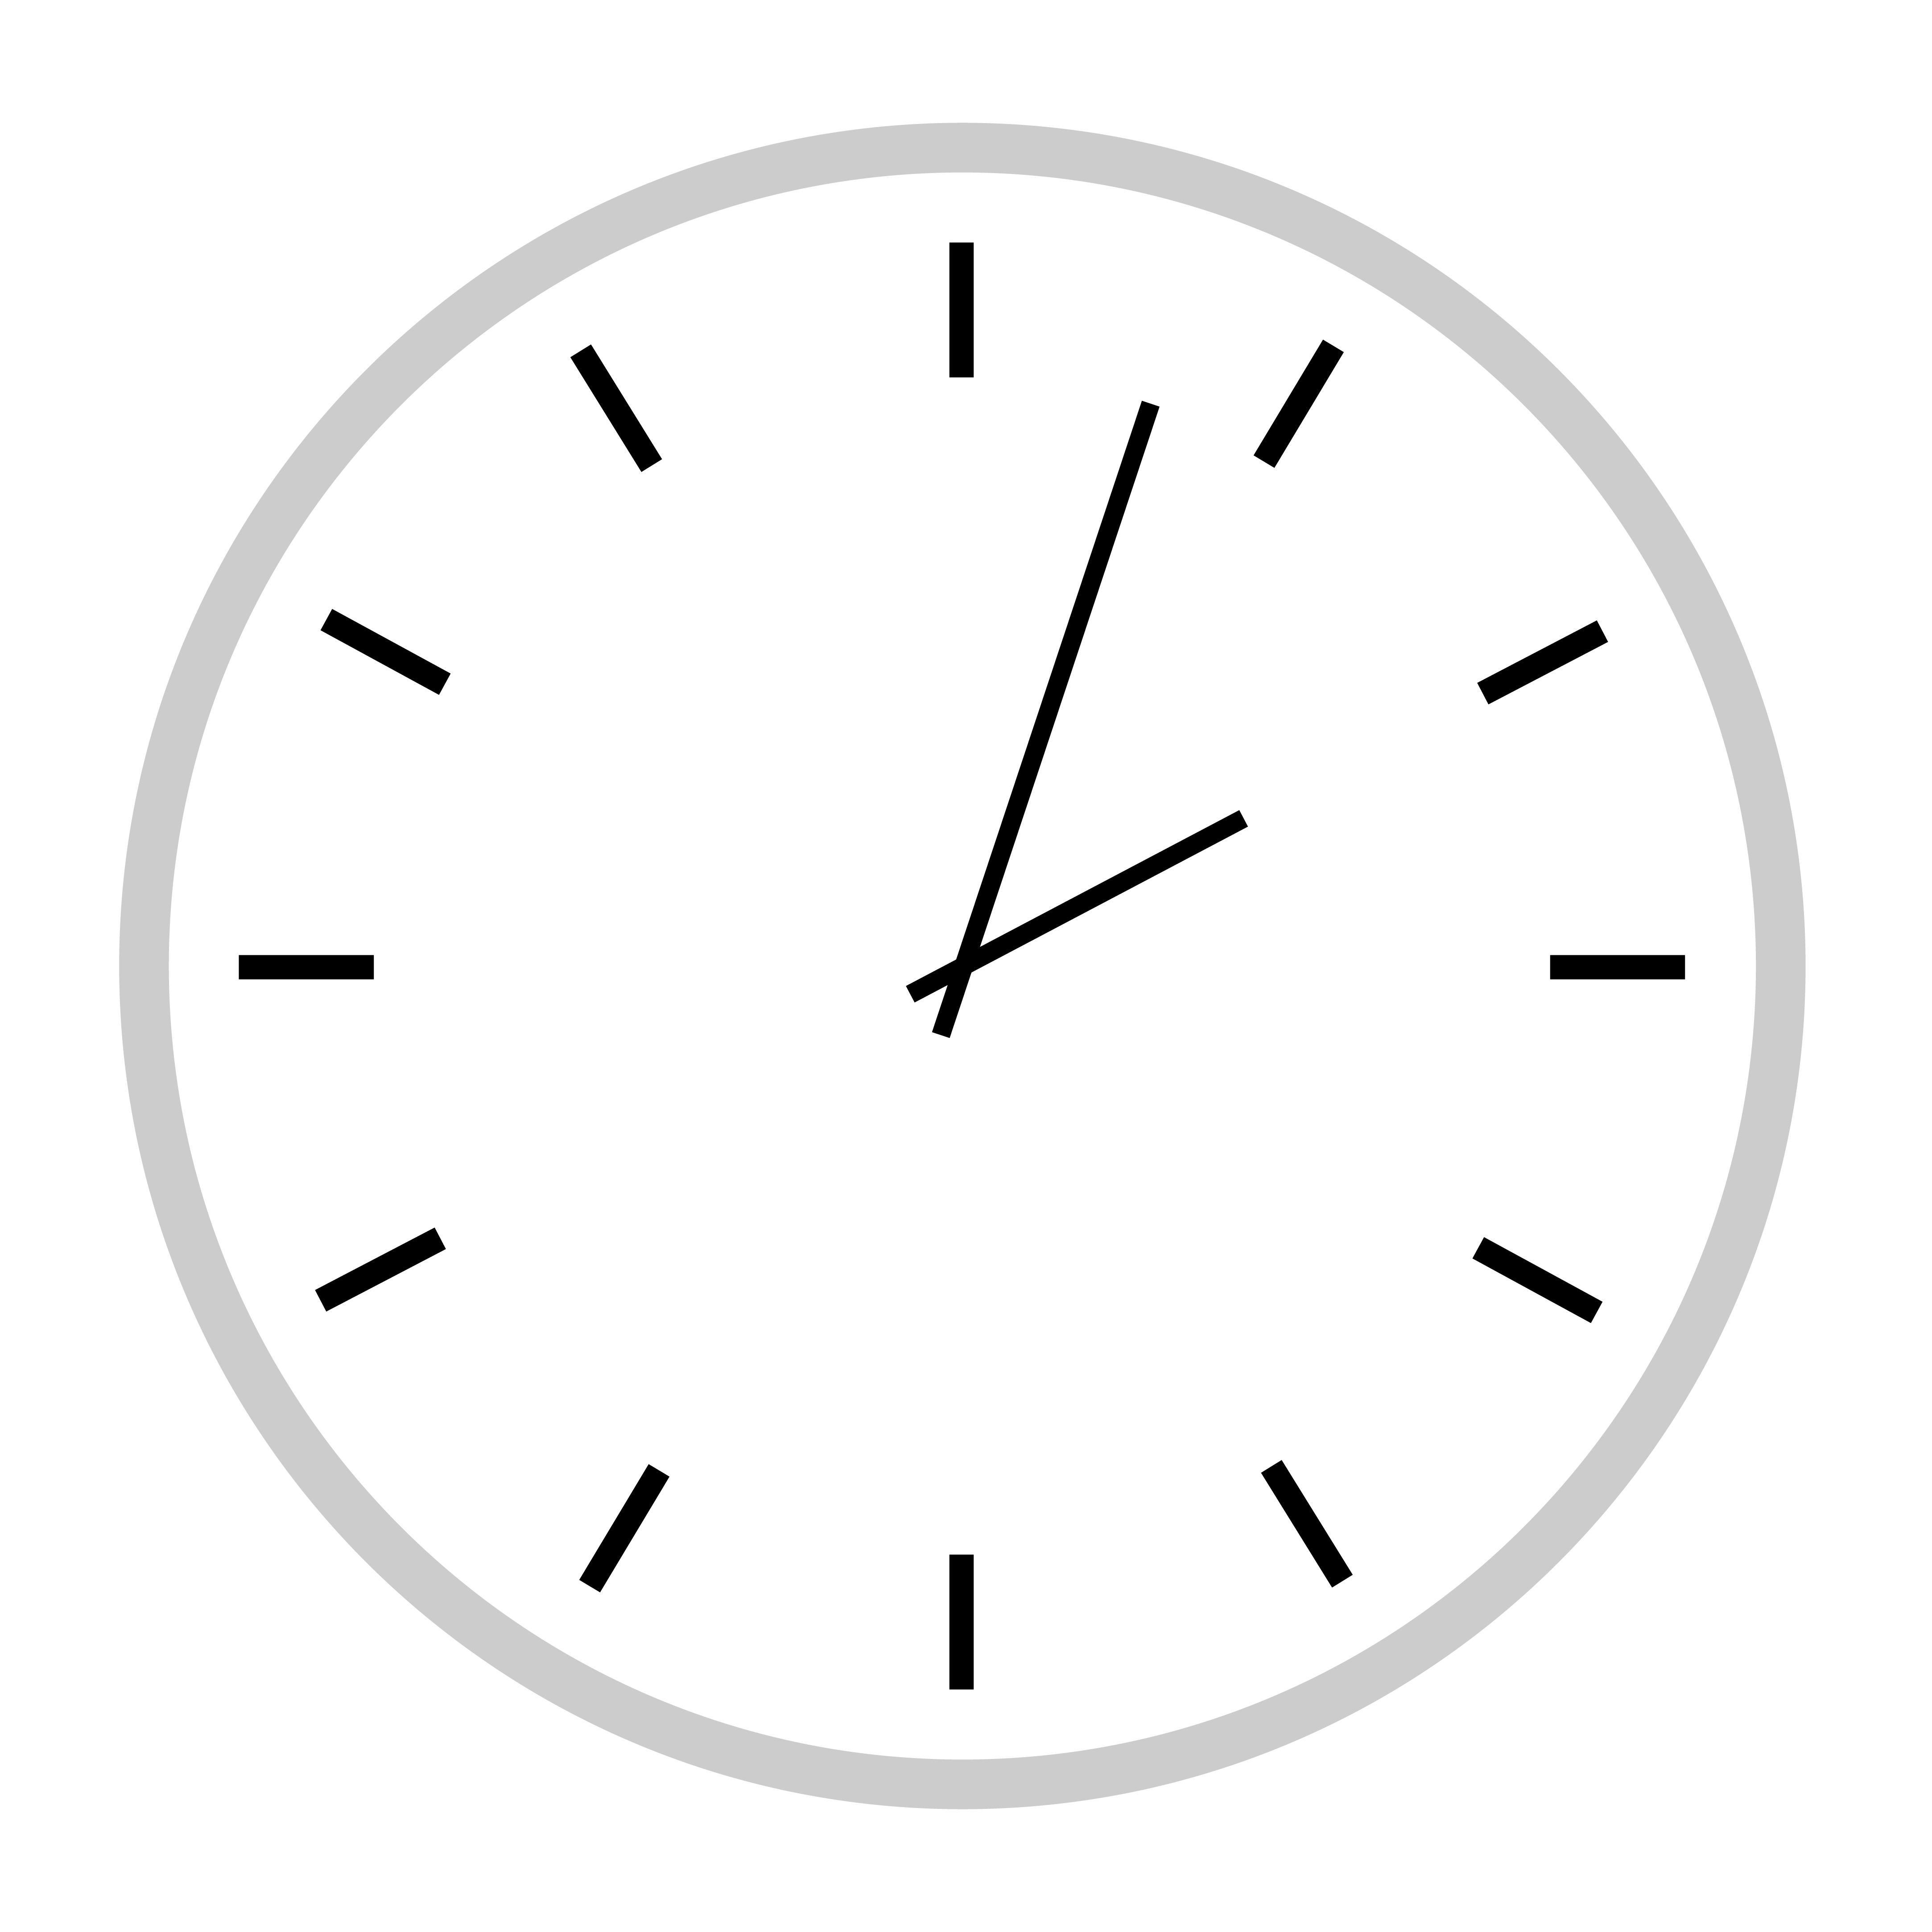 Clocks-Time-01.png